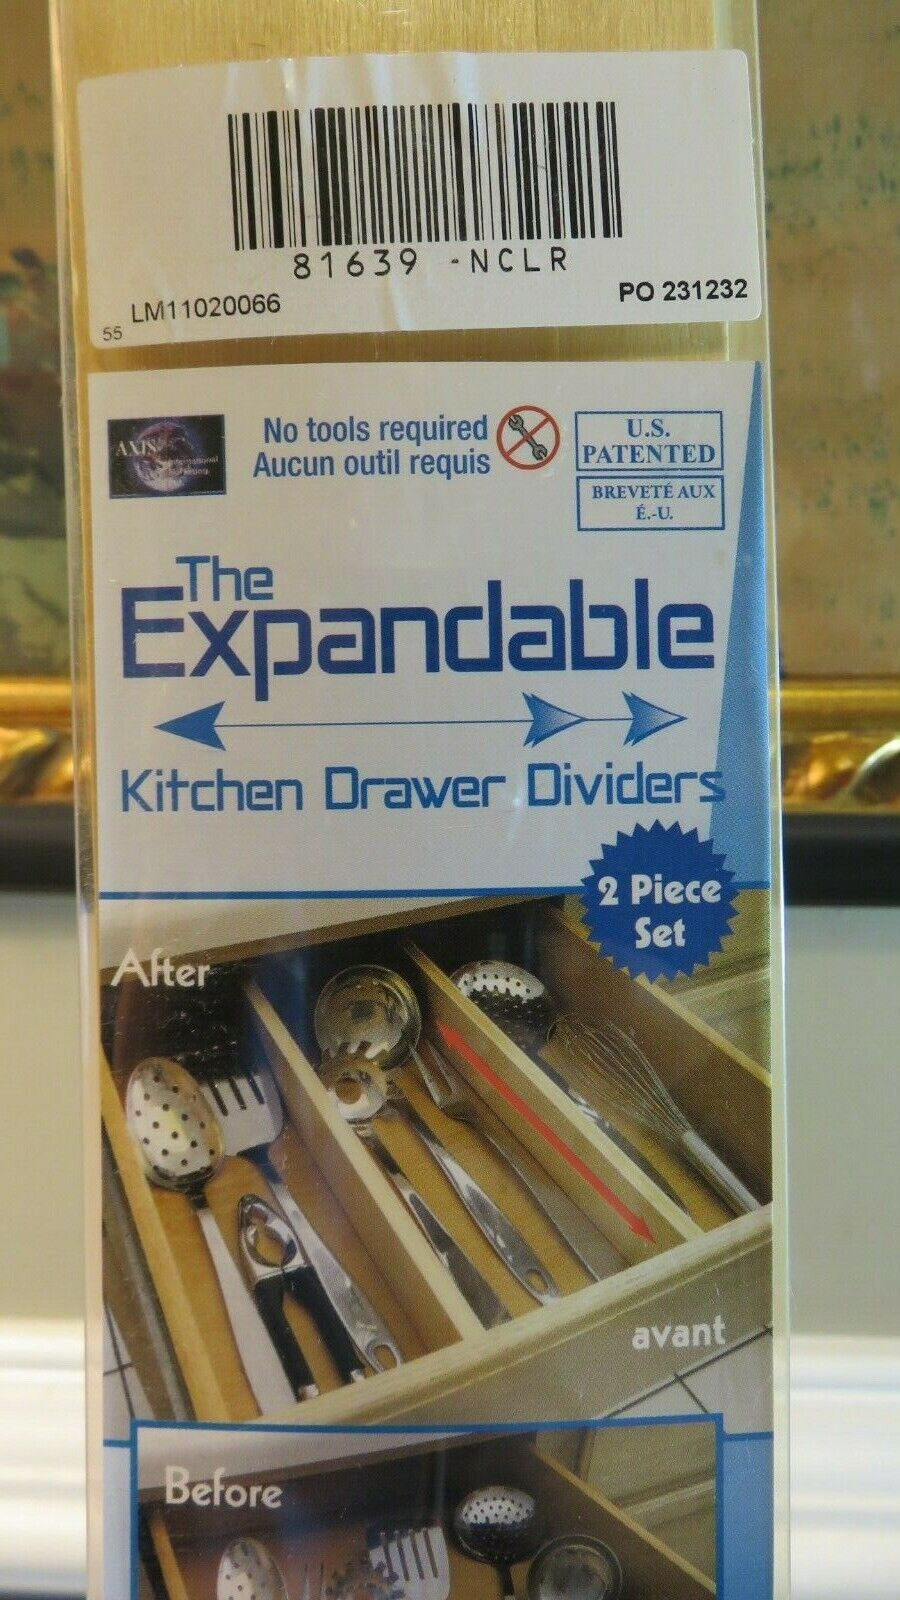 Quality Hardwood Kitchen Drawer Dividers and Organizer, 2 pc